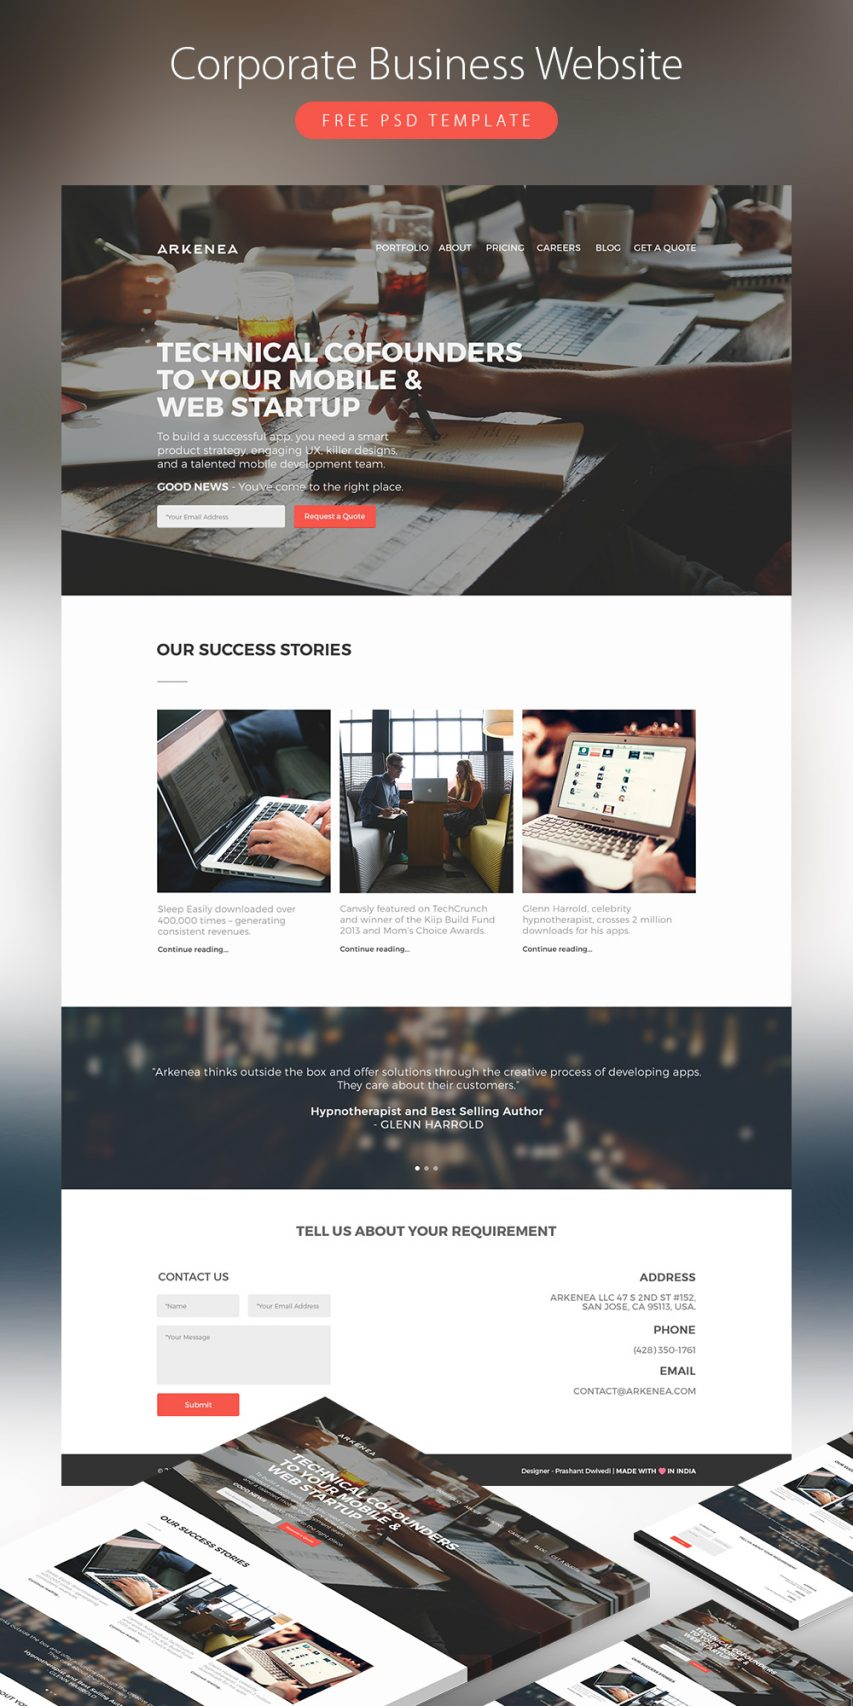 Corporate Business Website Template Free